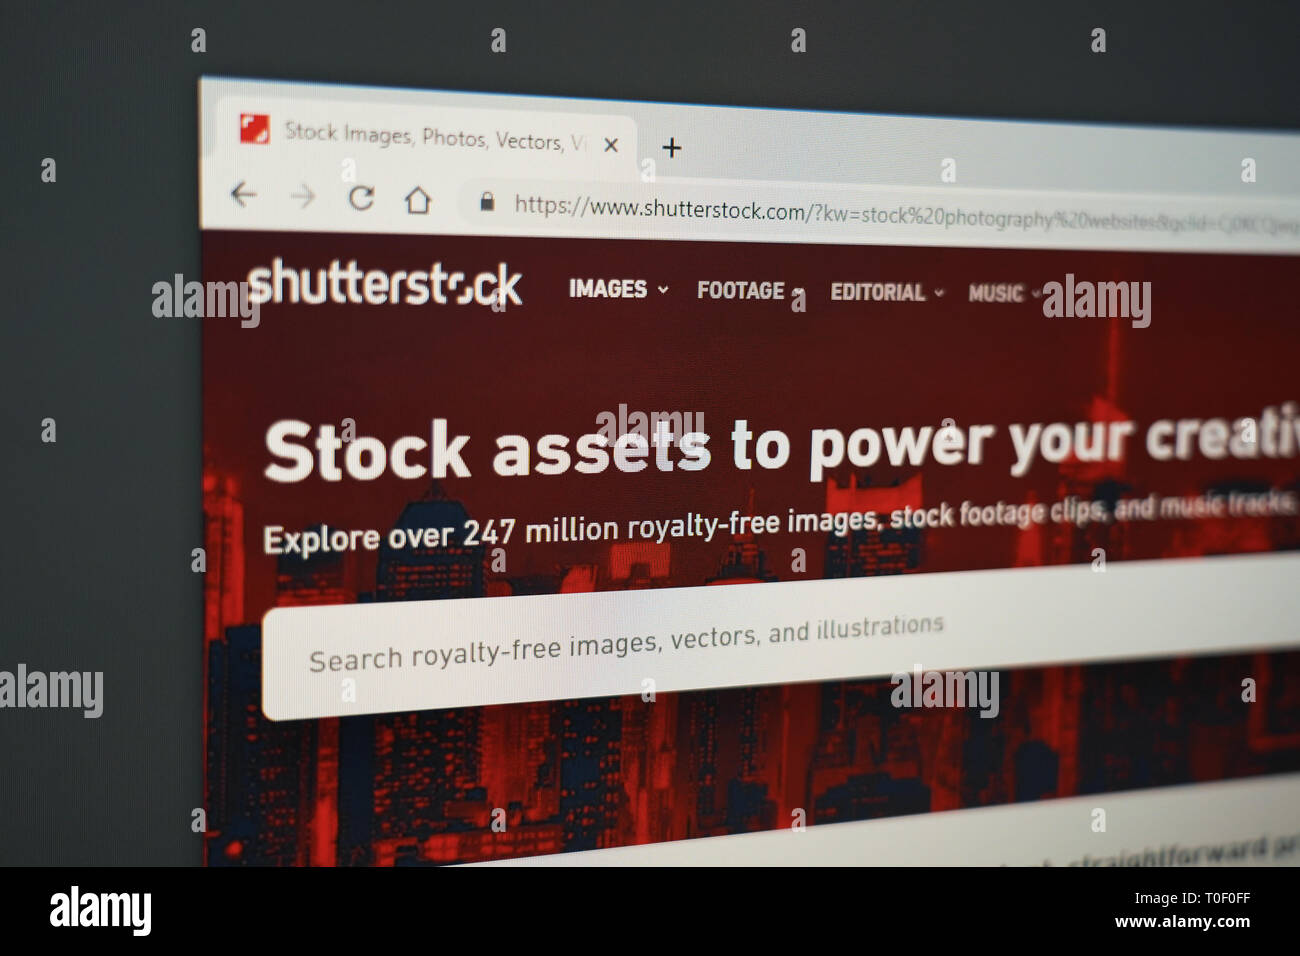 stock photography websites - Stock Image